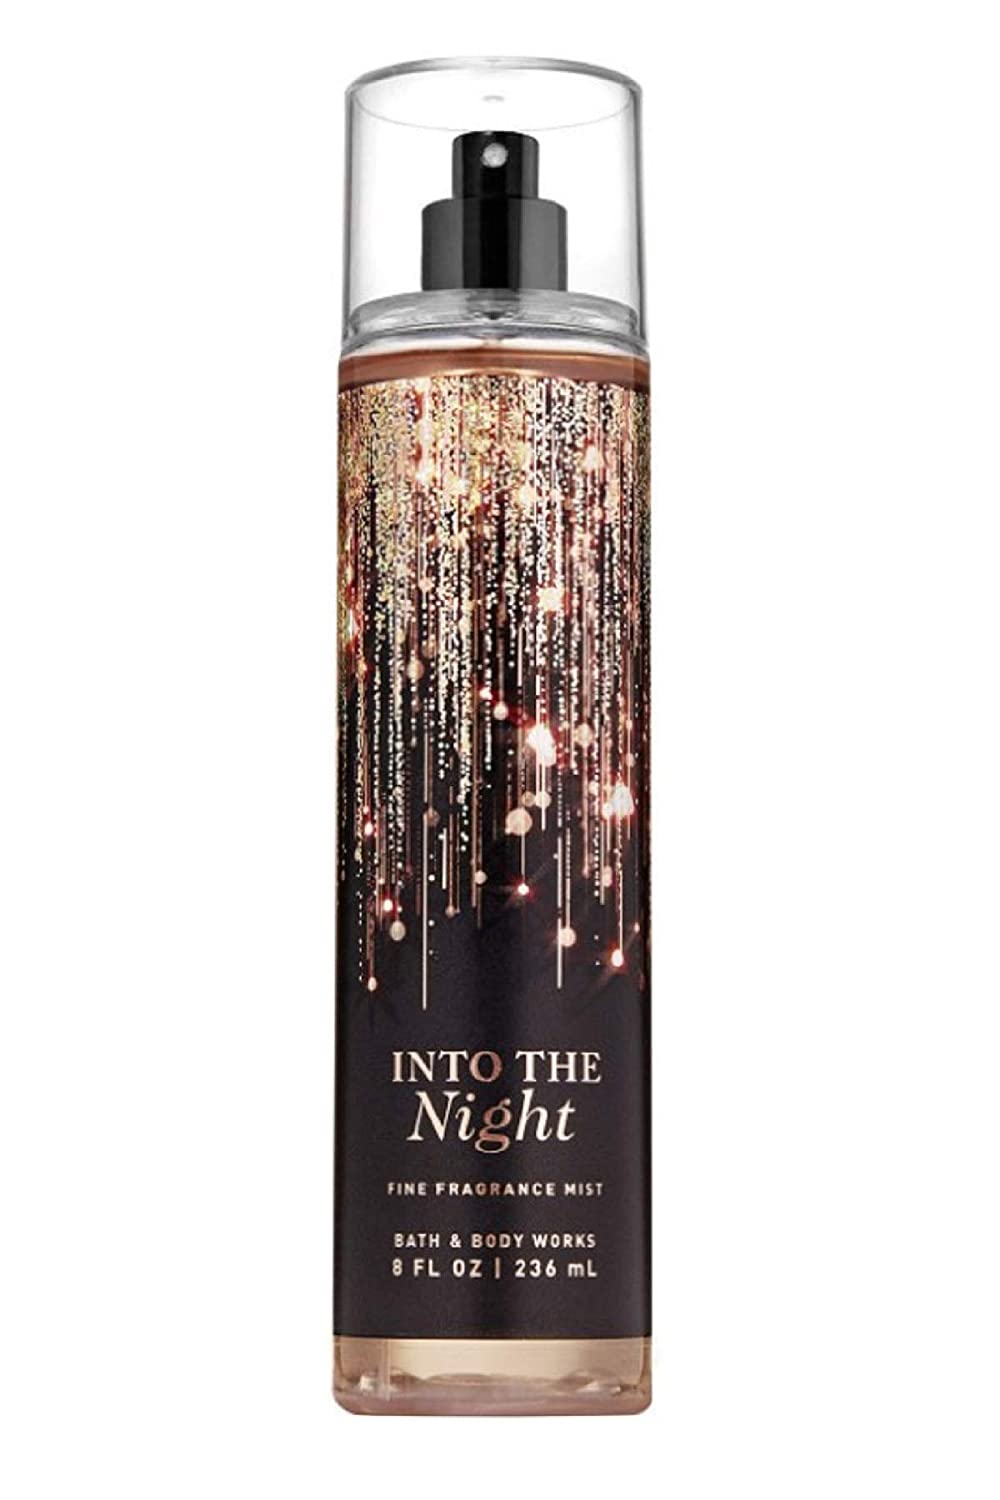 discount Bath and Body Over item handling Works INTO THE NIGHT Mist O 8 Fragrance Fine Fluid